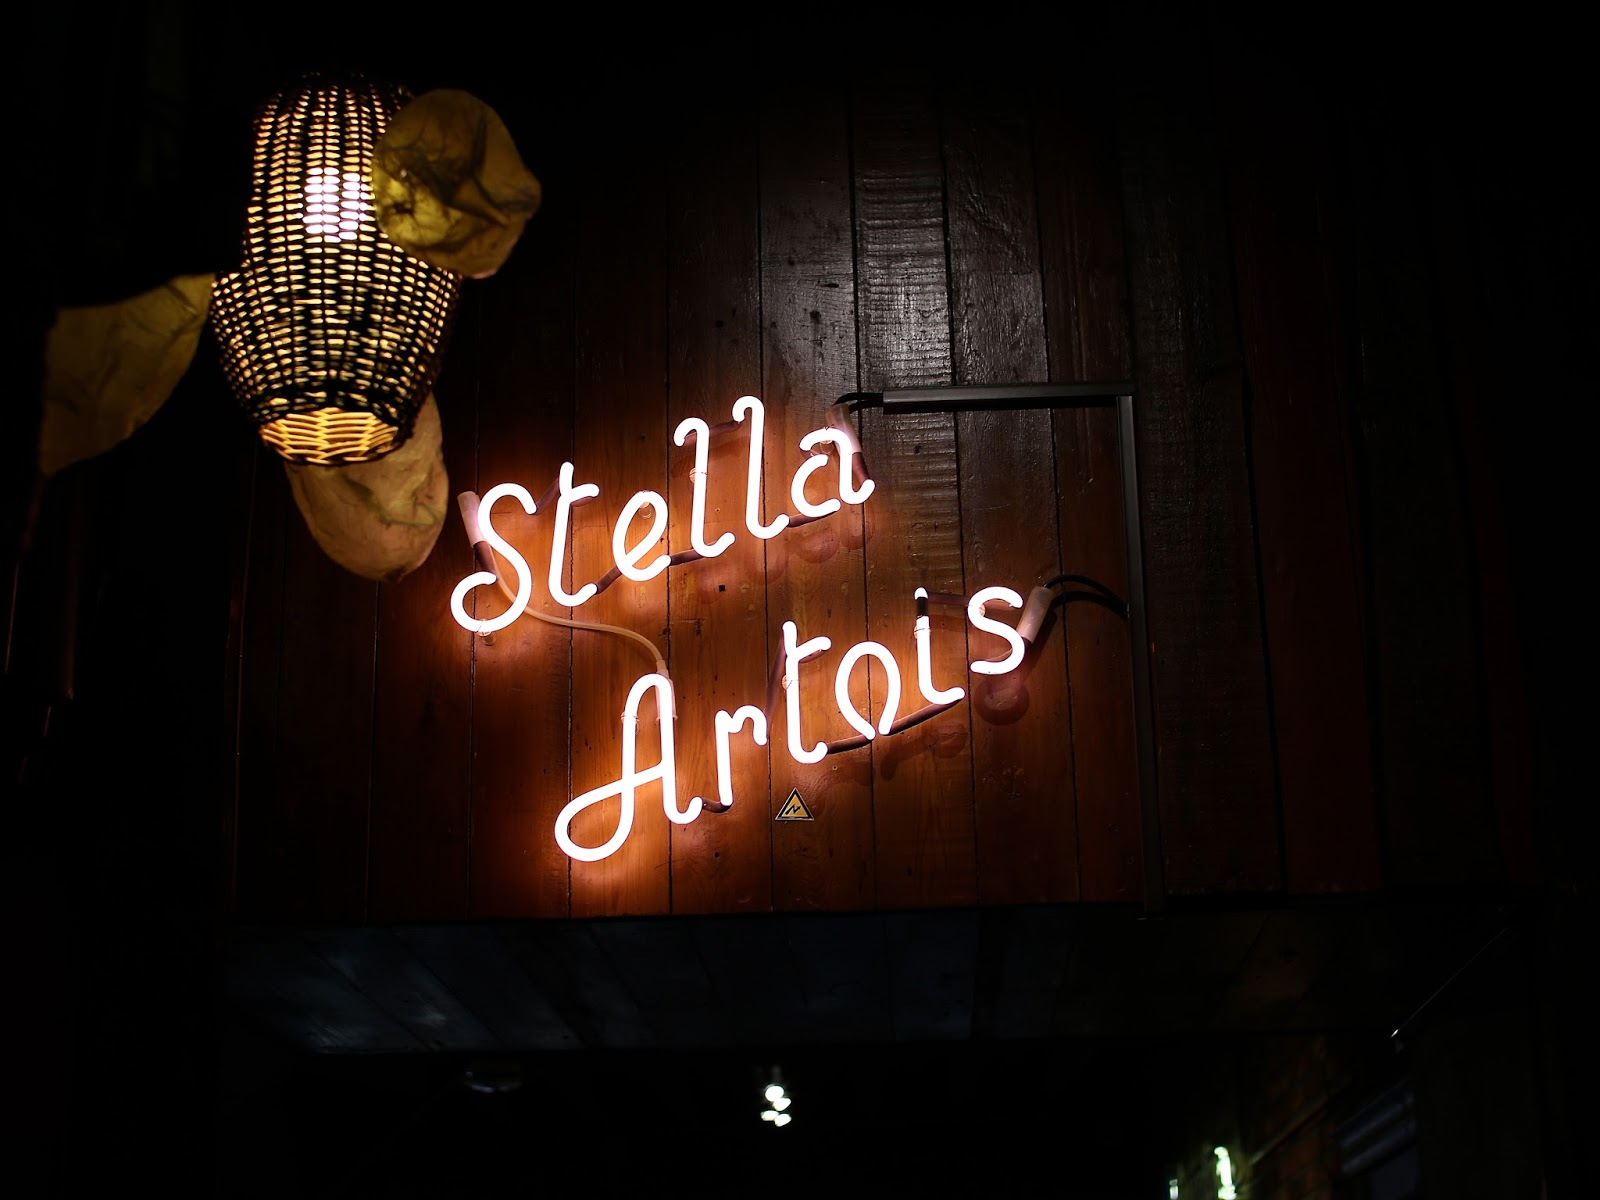 stella Artois light up sign in europe